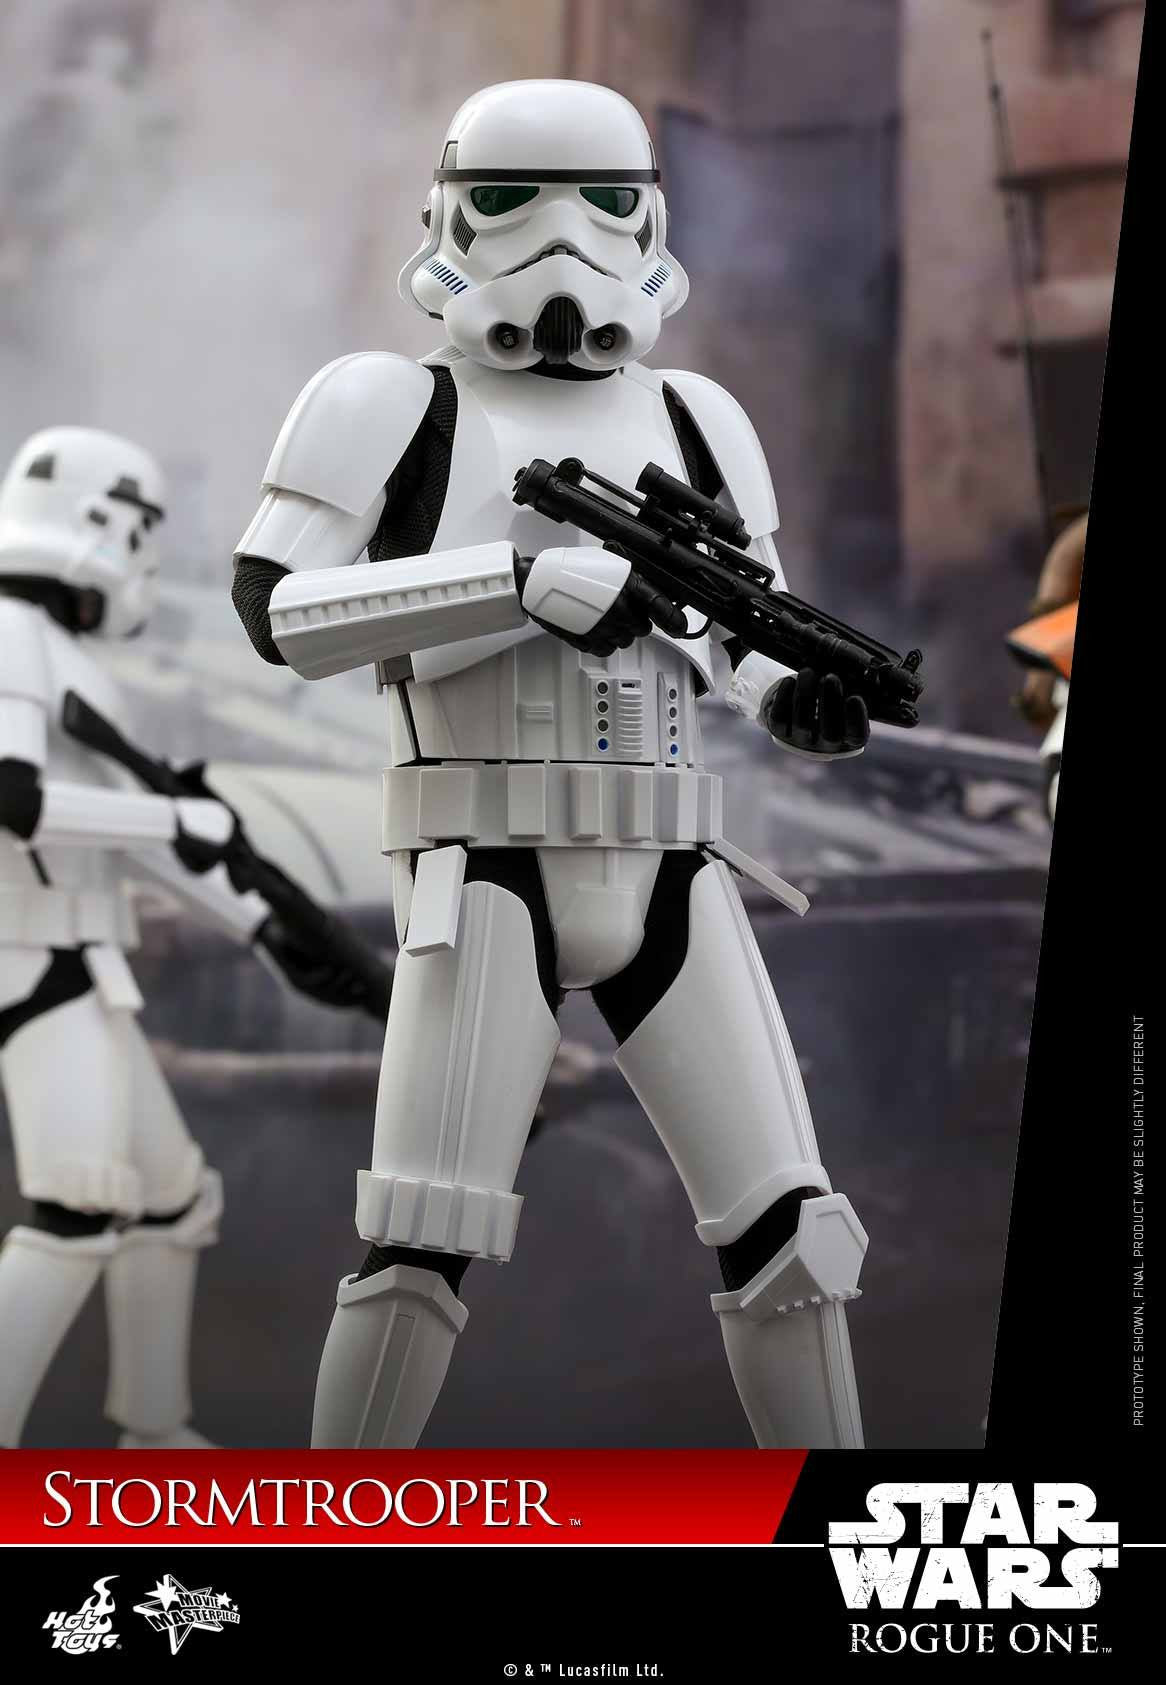 Hot Toys - MMS393 - Rogue One: A Star Wars Story - Stormtrooper - Marvelous Toys - 1